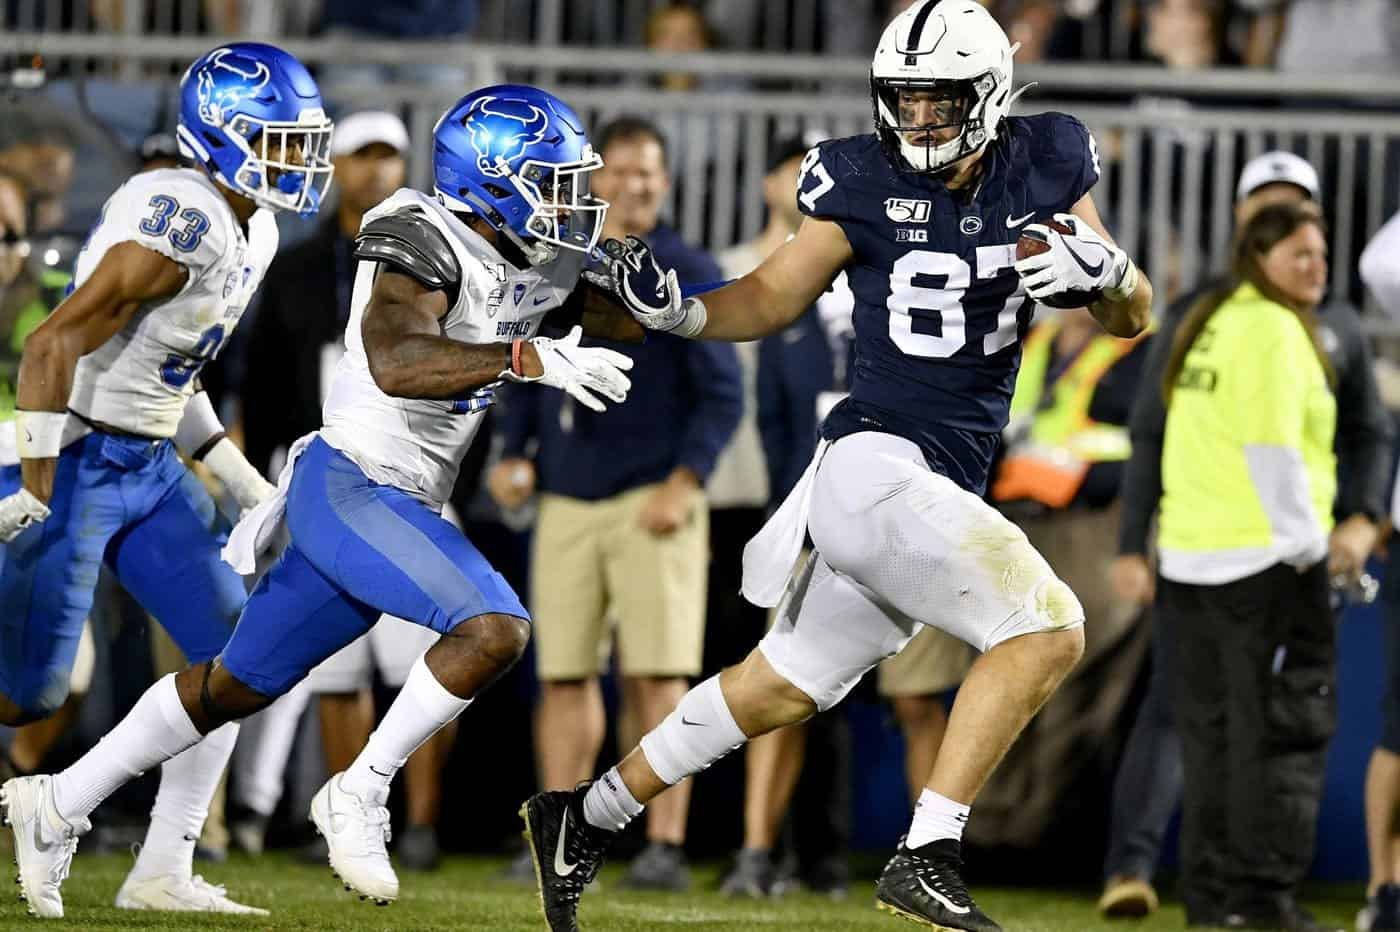 Top tight end prospects to watch in the 2021 NFL Draft